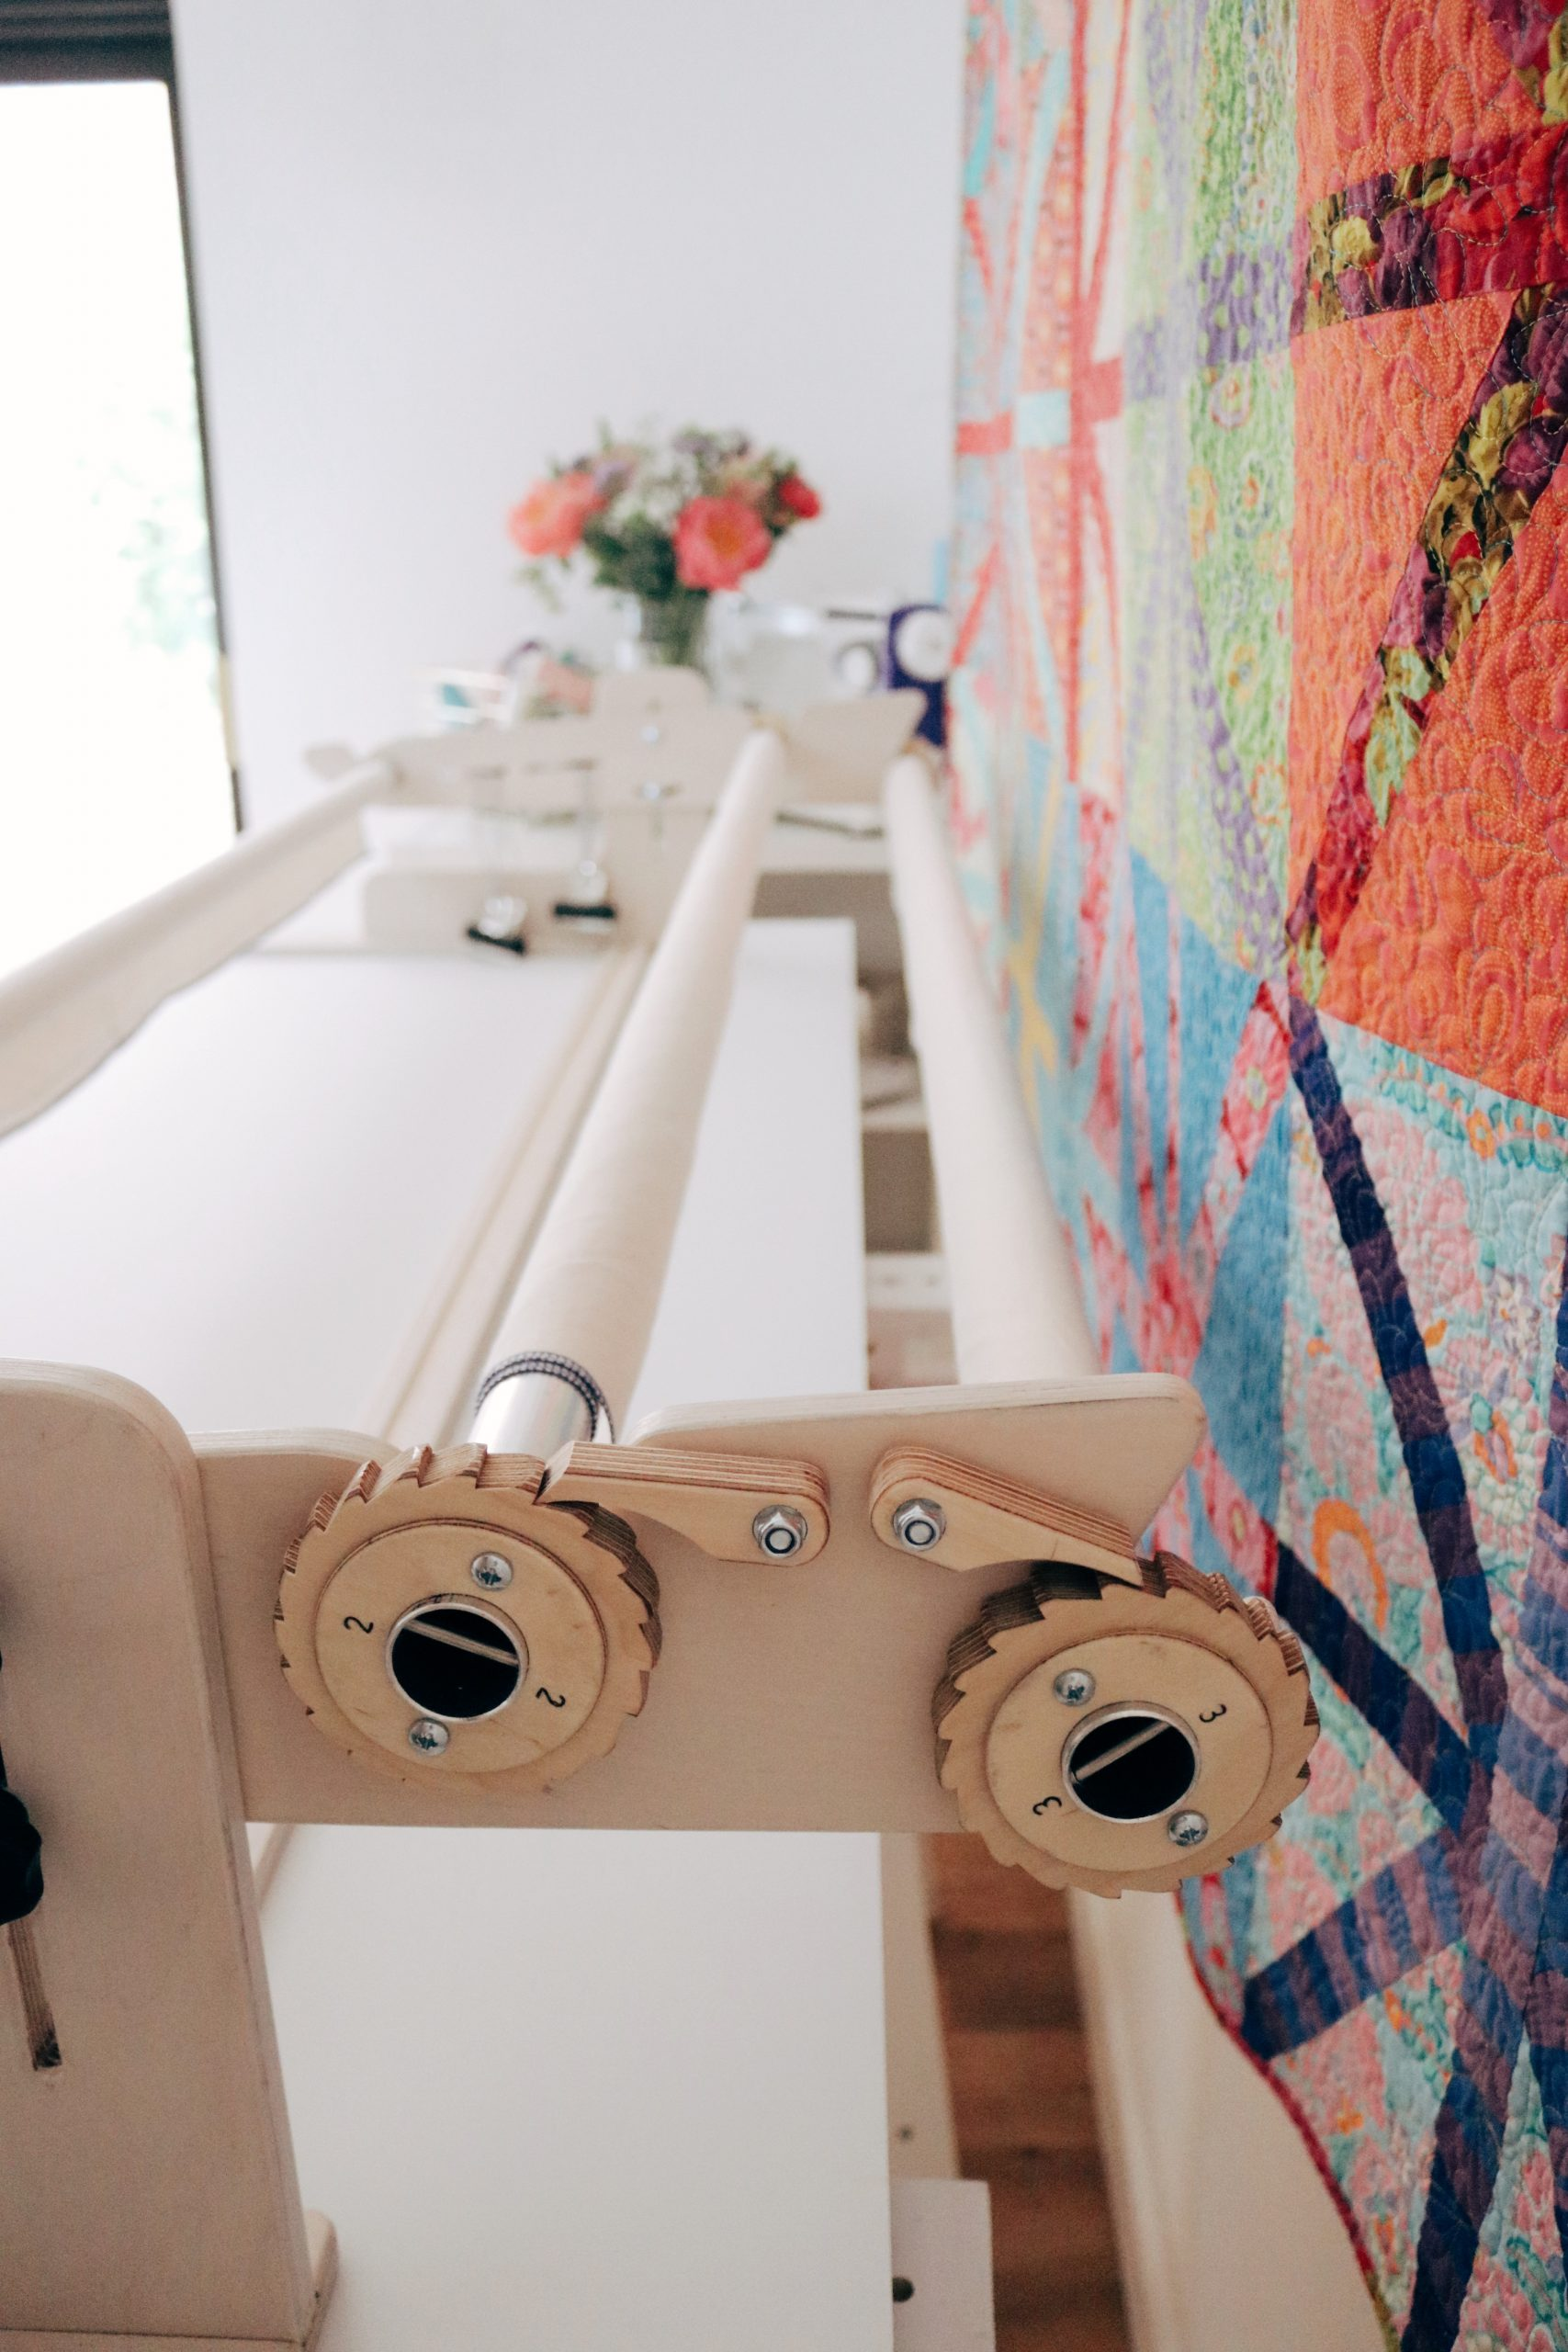 Beautiful end pieces and pole design updated to allow you to move seamlessly between quilting frame sizes.